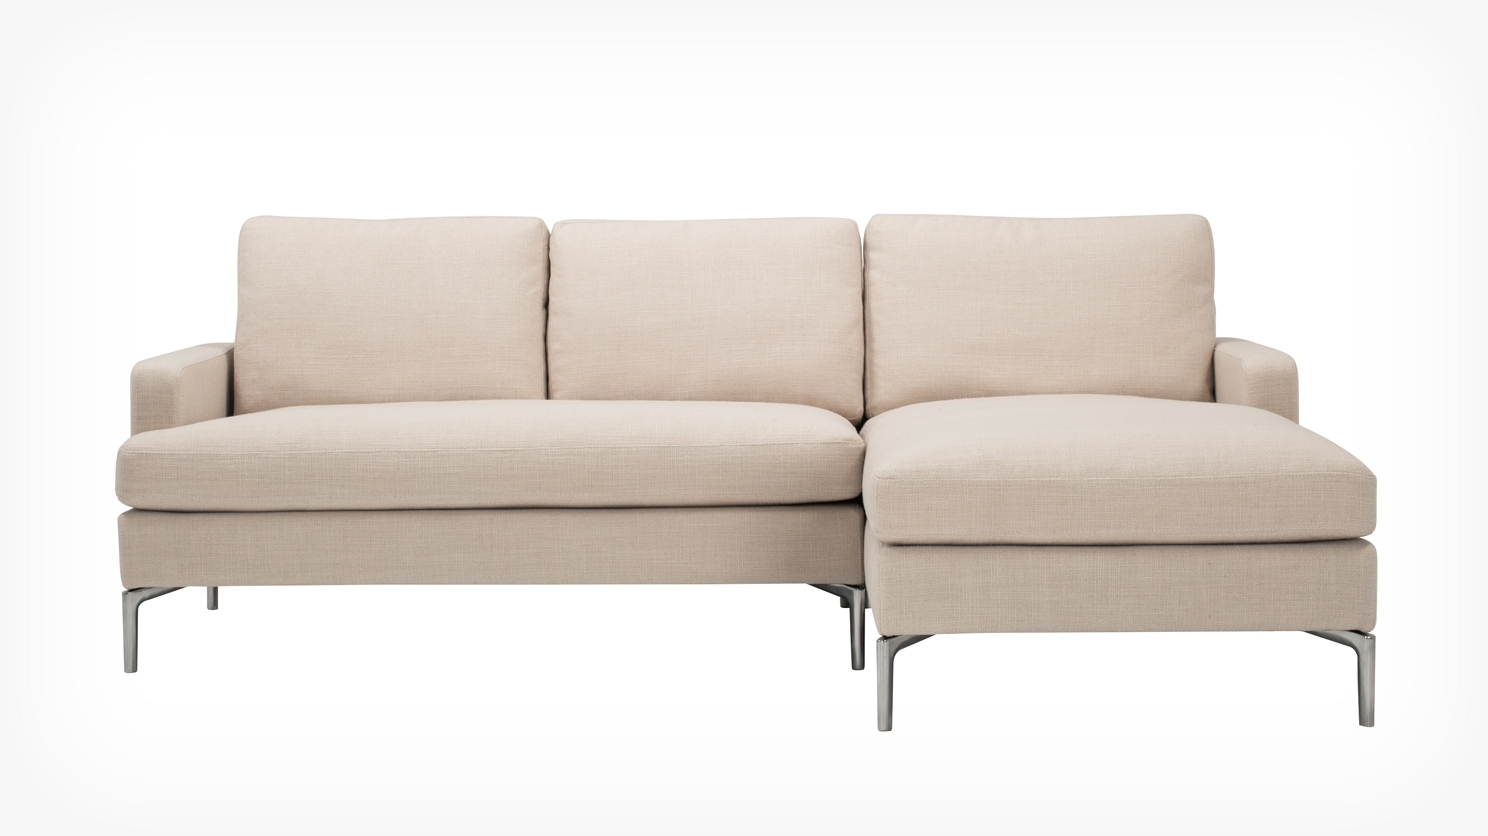 Preferred Small Sofas With Chaise With 3 Pieces Small Sectional Beige Sofa With Chaise And Skinny Chrome (View 13 of 15)